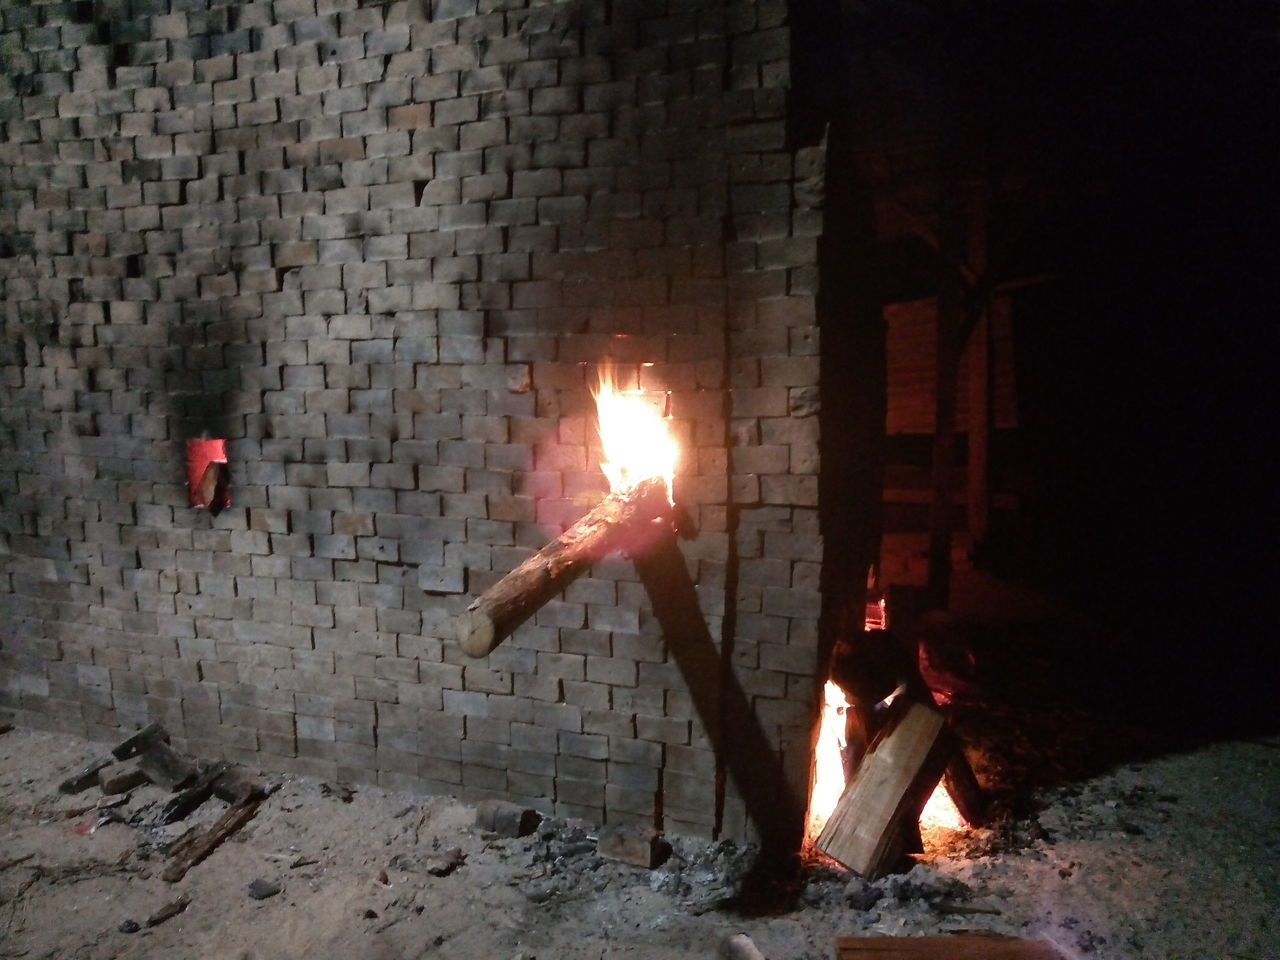 flame, fire, burning, fire - natural phenomenon, heat - temperature, glowing, nature, night, illuminated, firewood, motion, log, wood, architecture, built structure, no people, wood - material, environment, wall, fireplace, bonfire